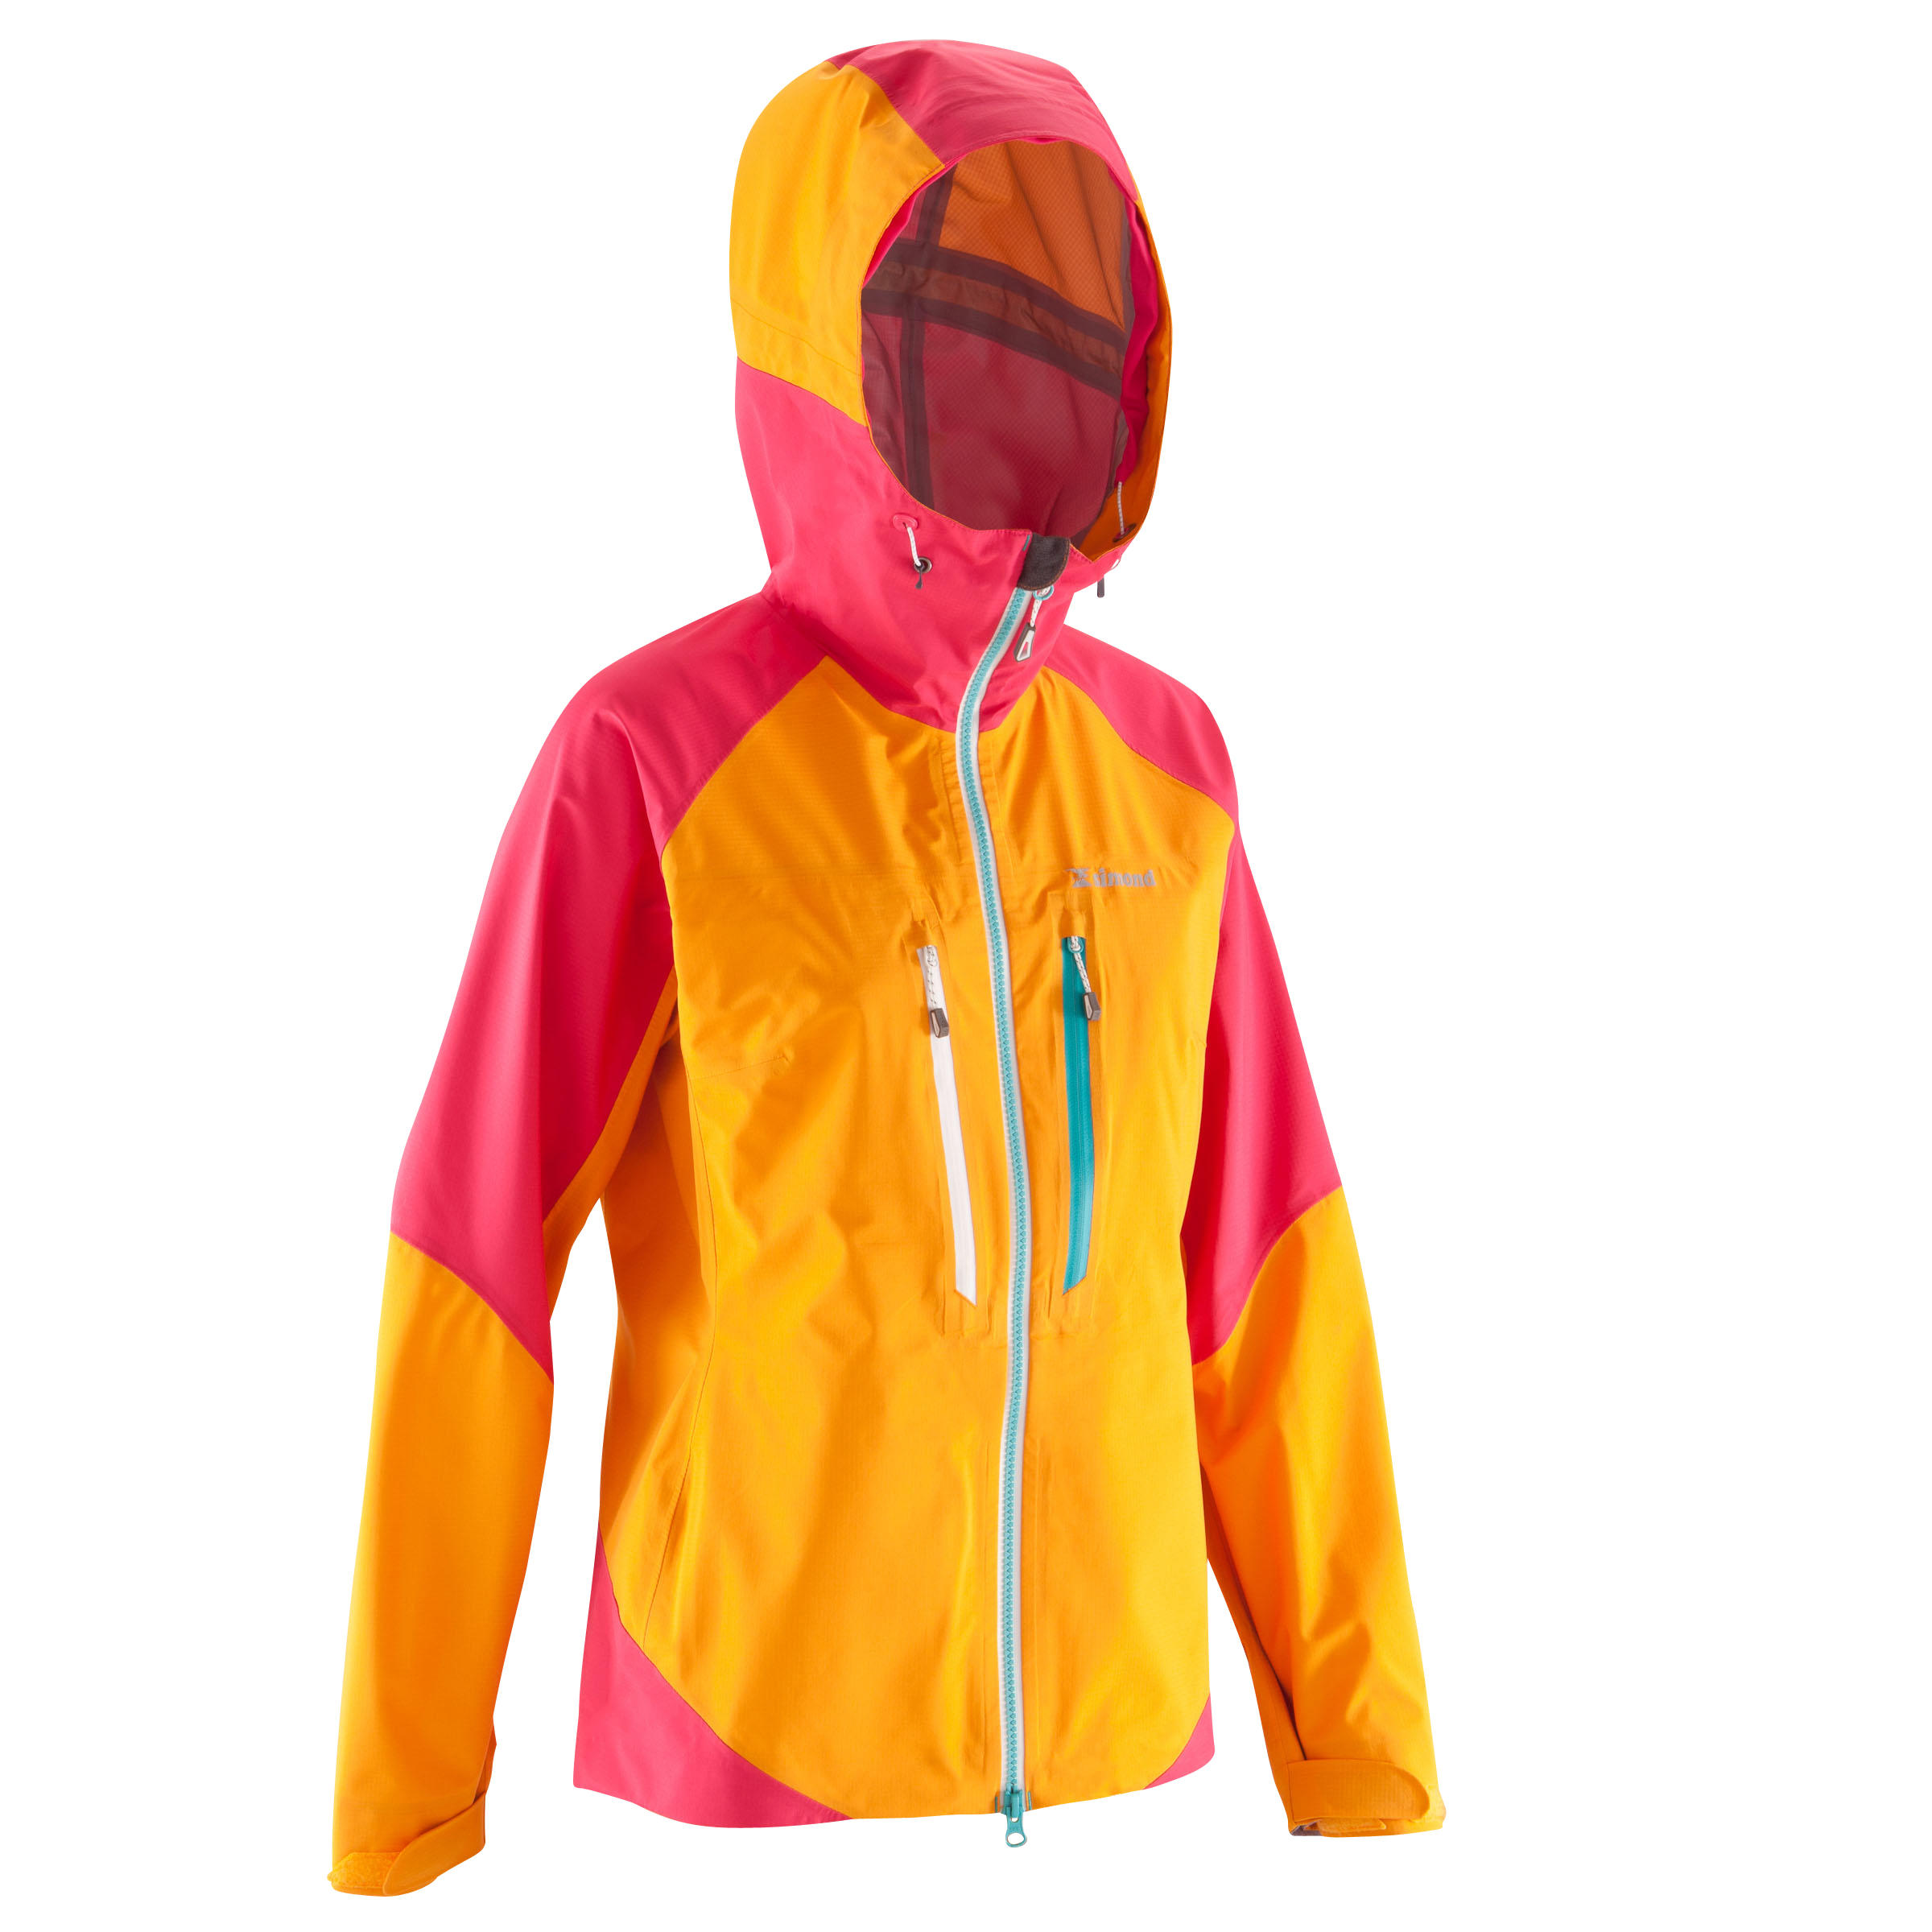 VESTE ALPINISM LIGHT FEMME Mangue et Rose